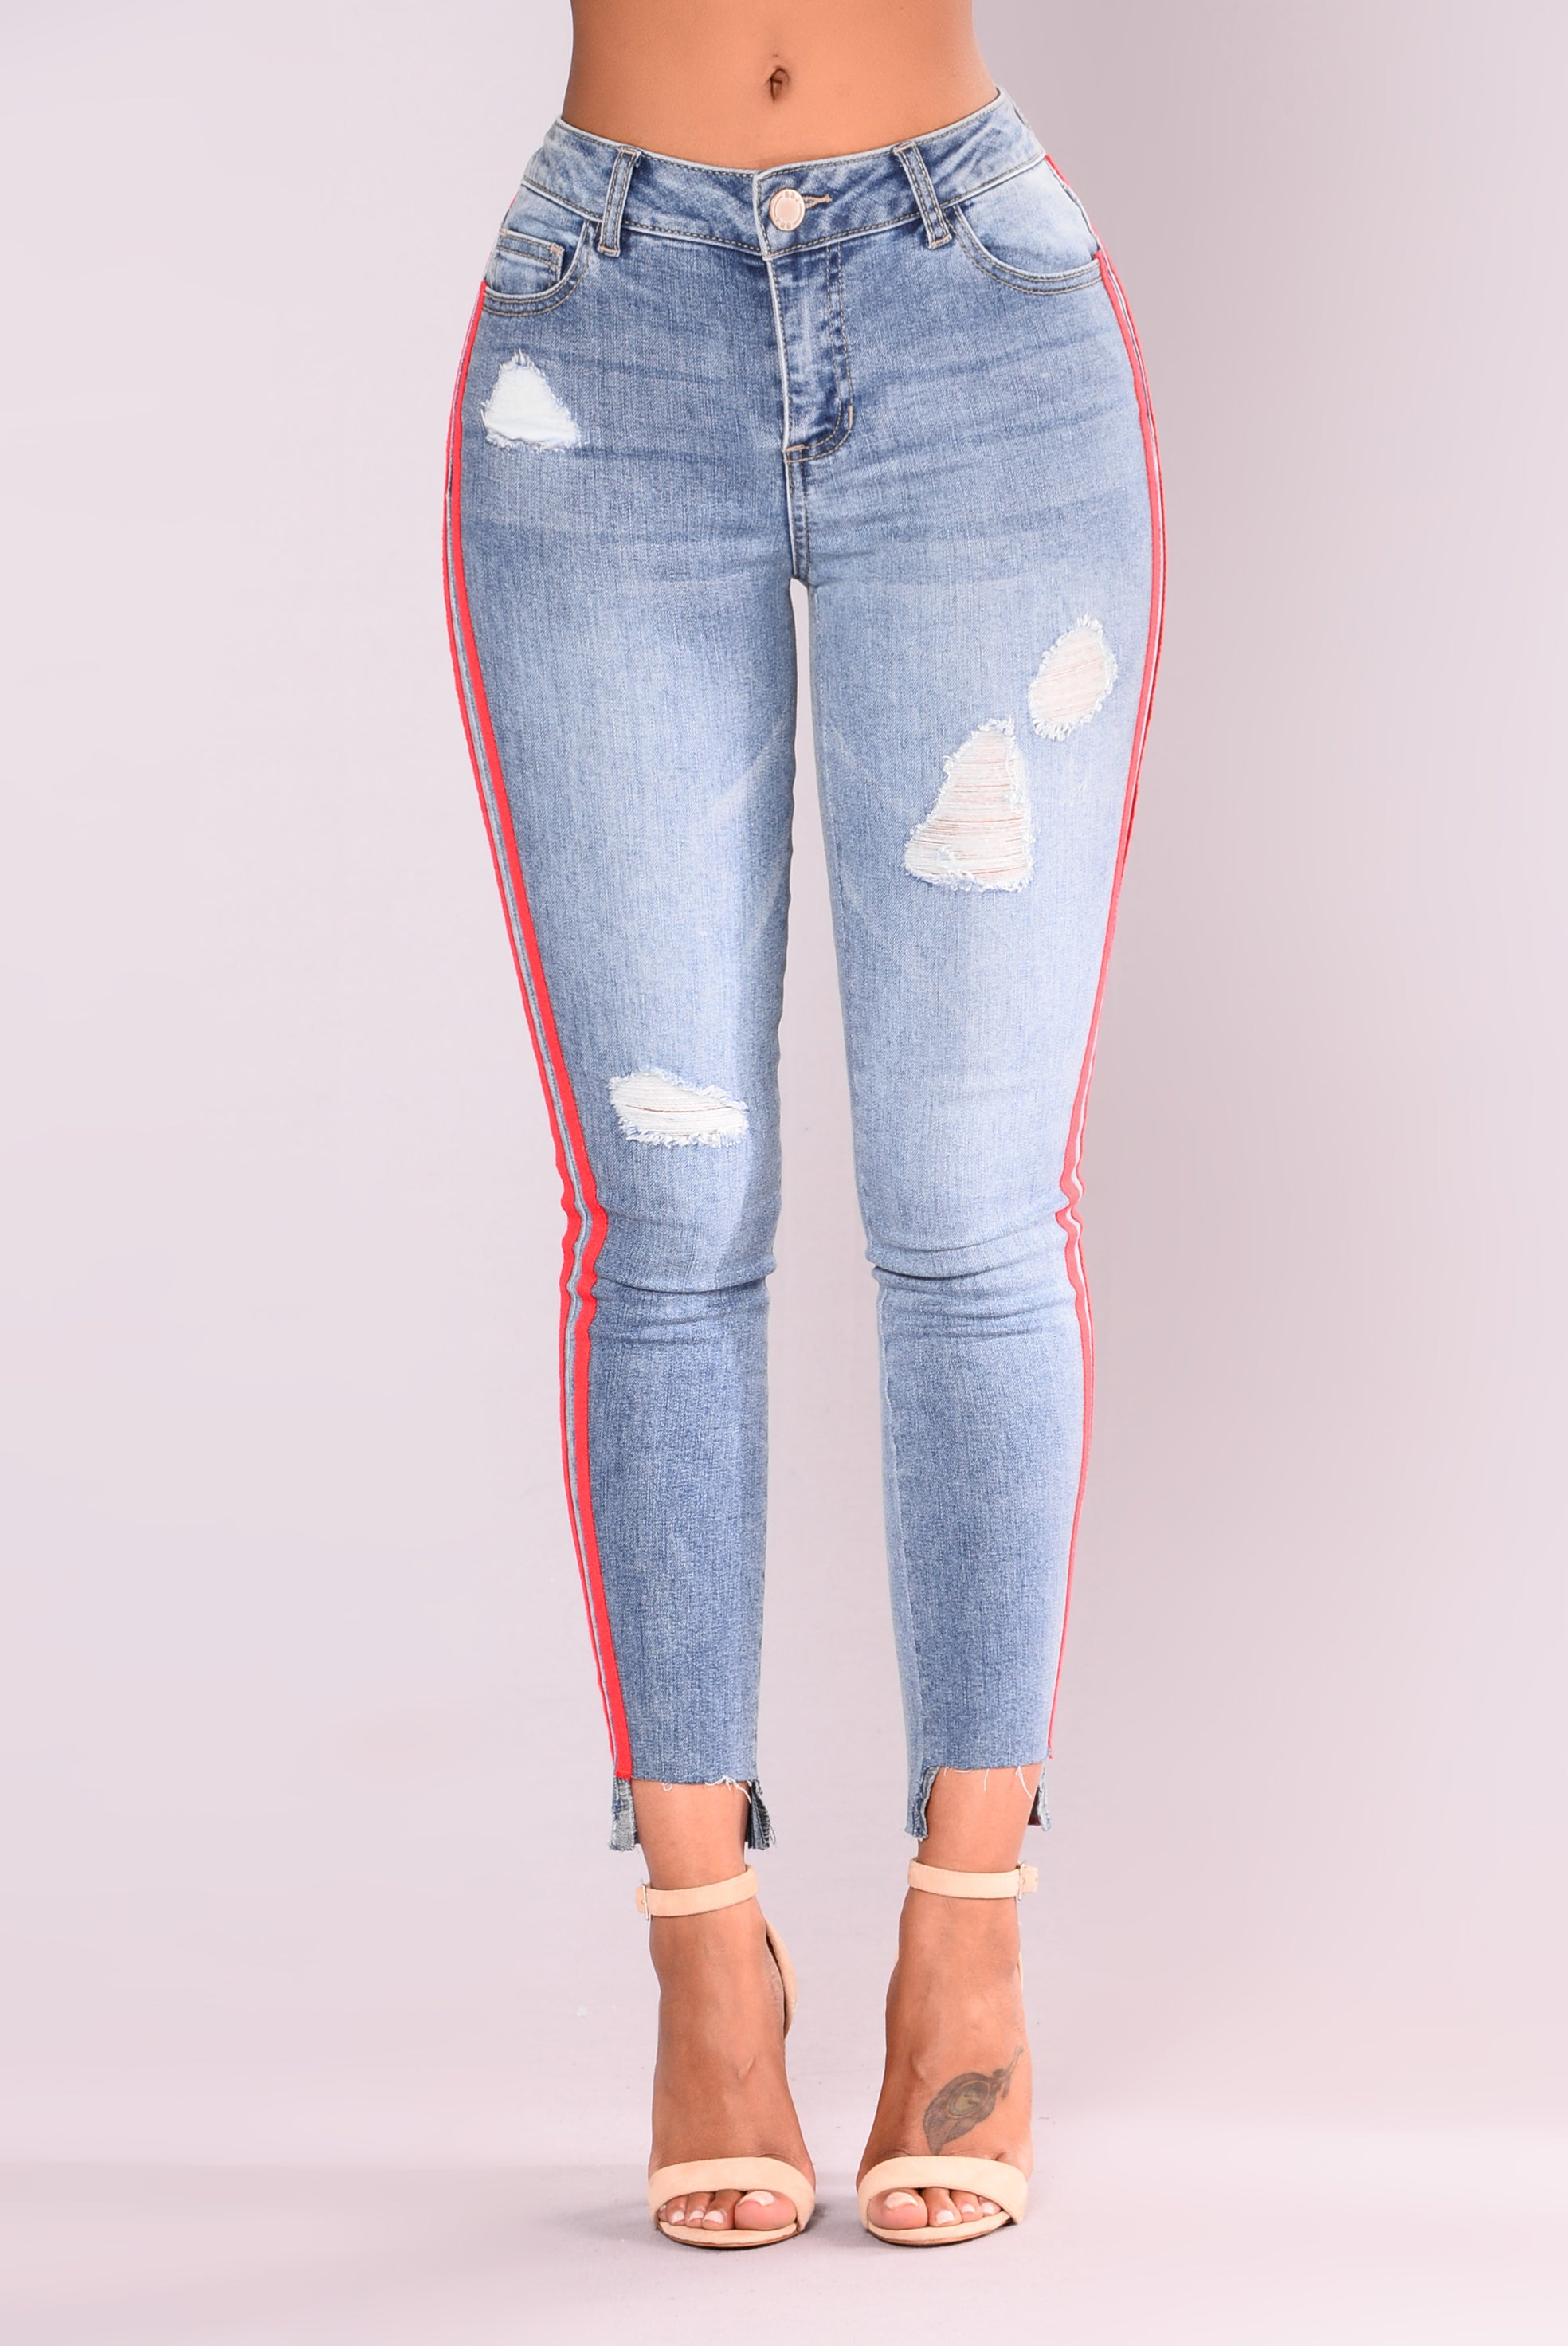 7f3681ad01abe2 Athlete Jeans - Blue Red